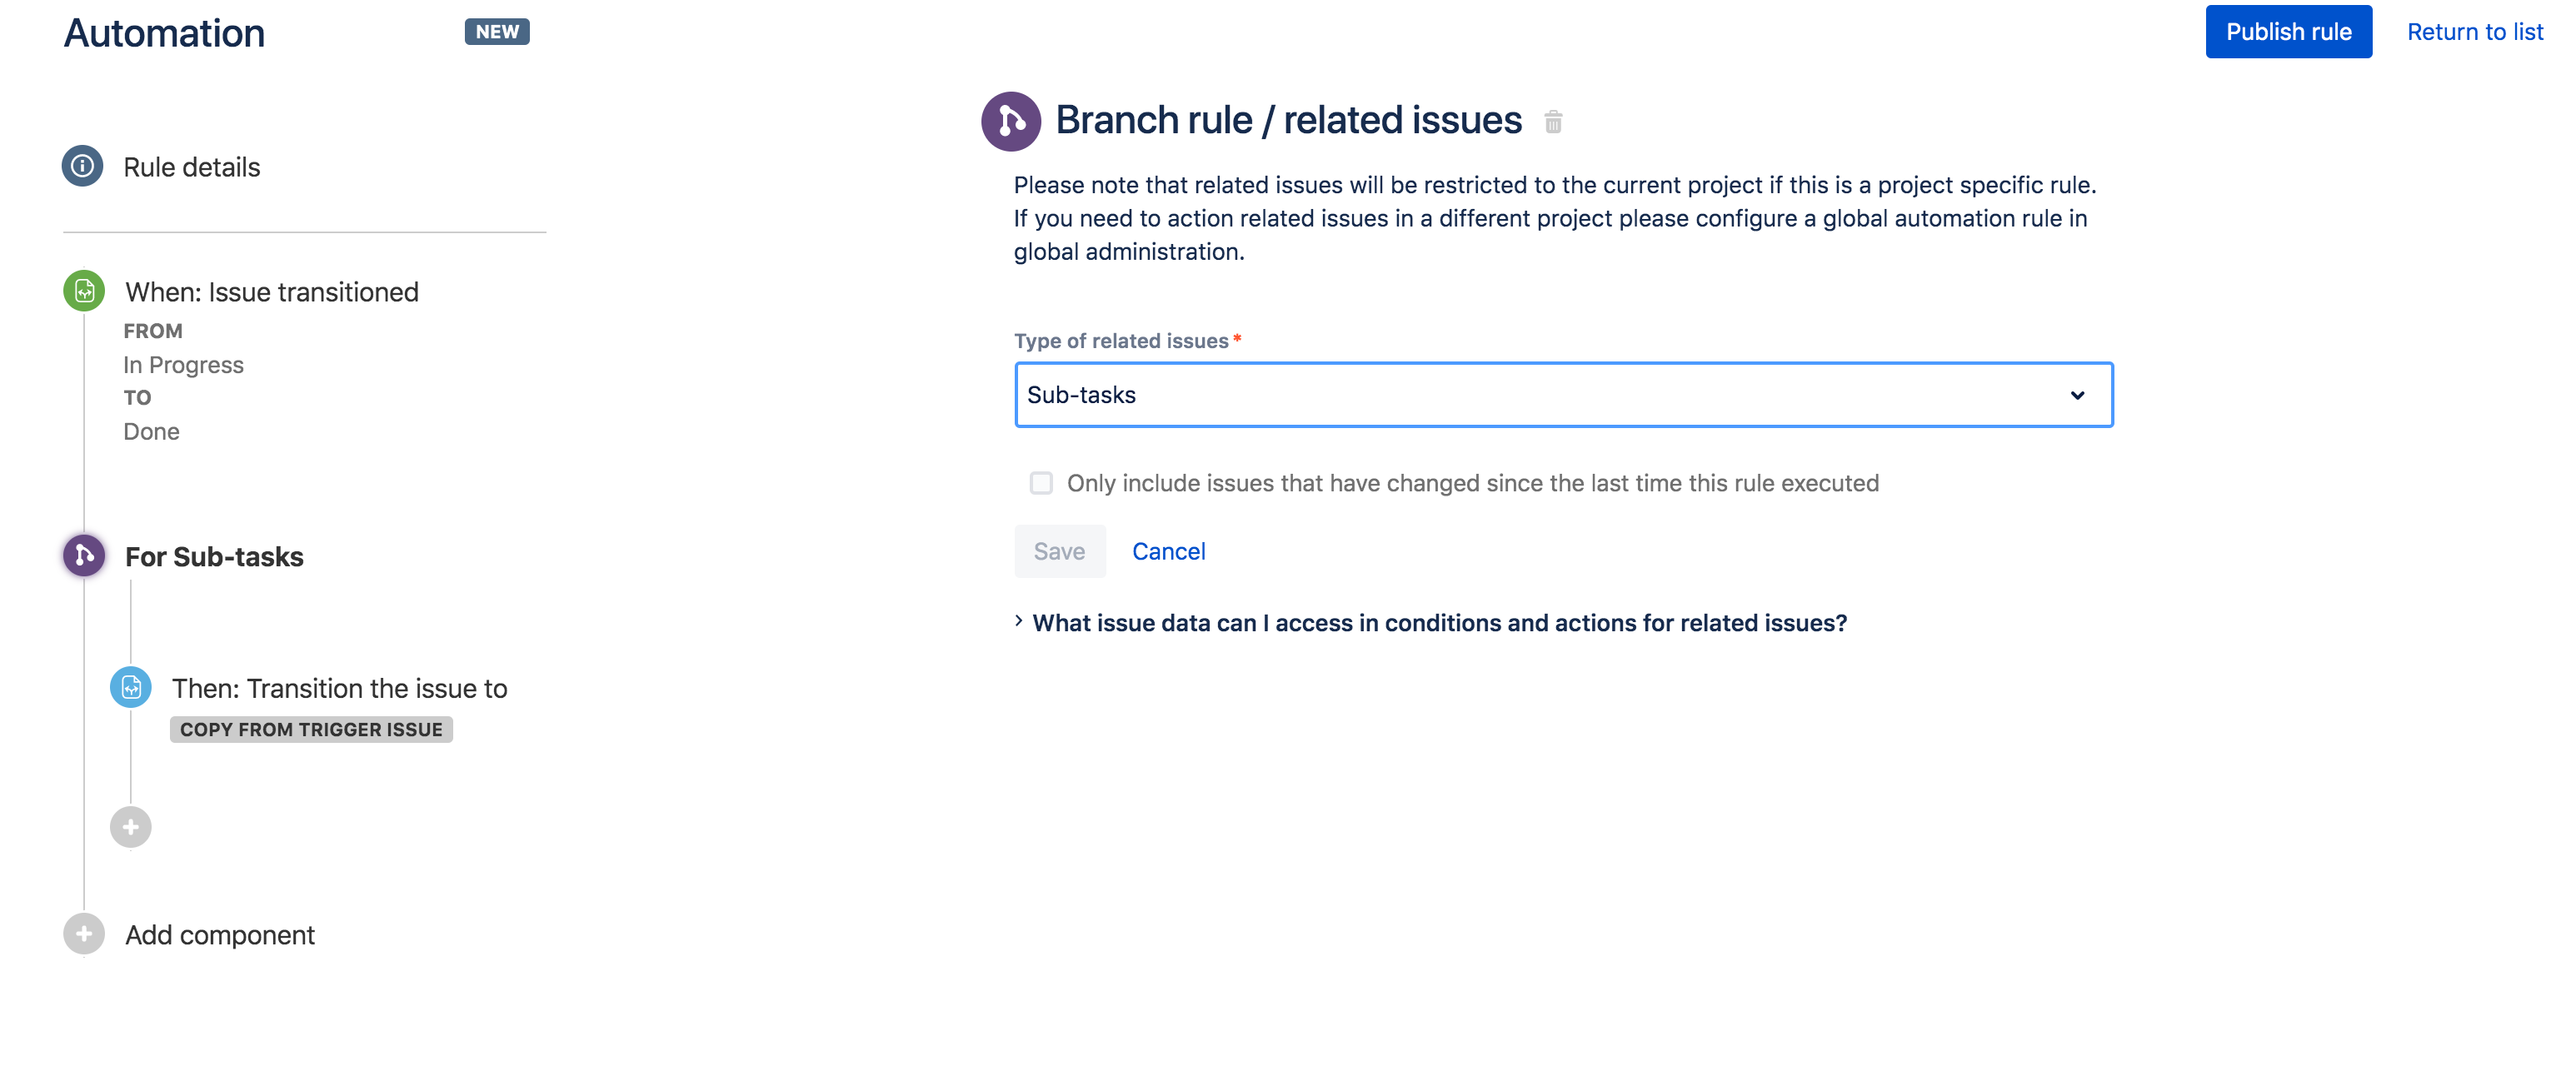 Synchronize parent and sub-task issues with Automation for JIRA!